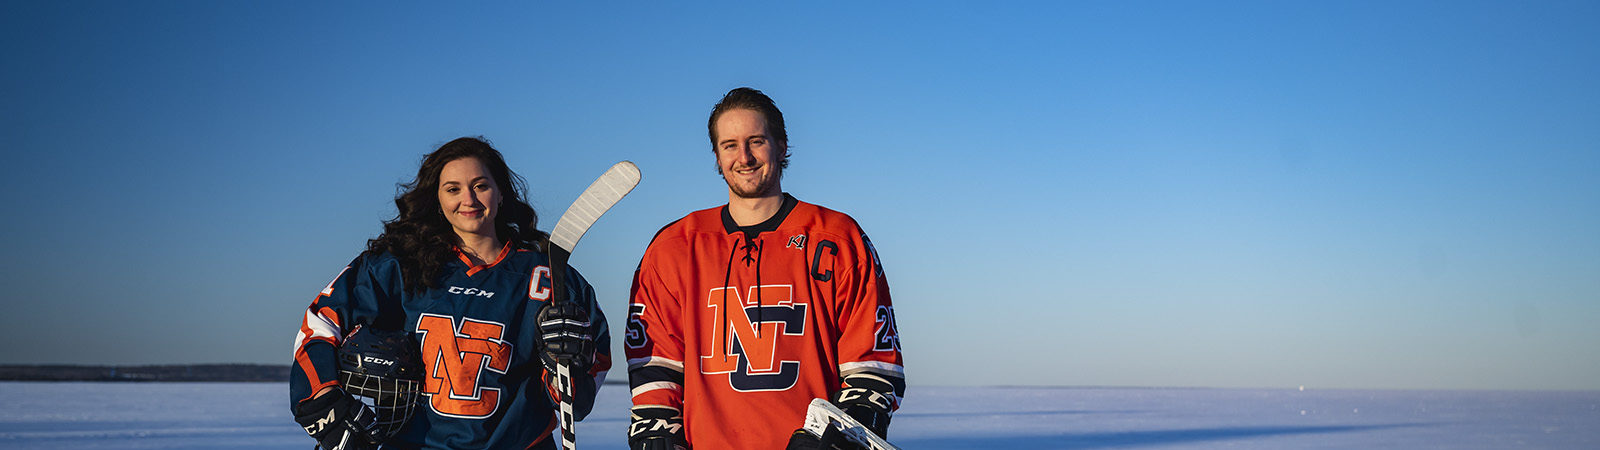 Northland College hockey captains stand on Lake Superior.